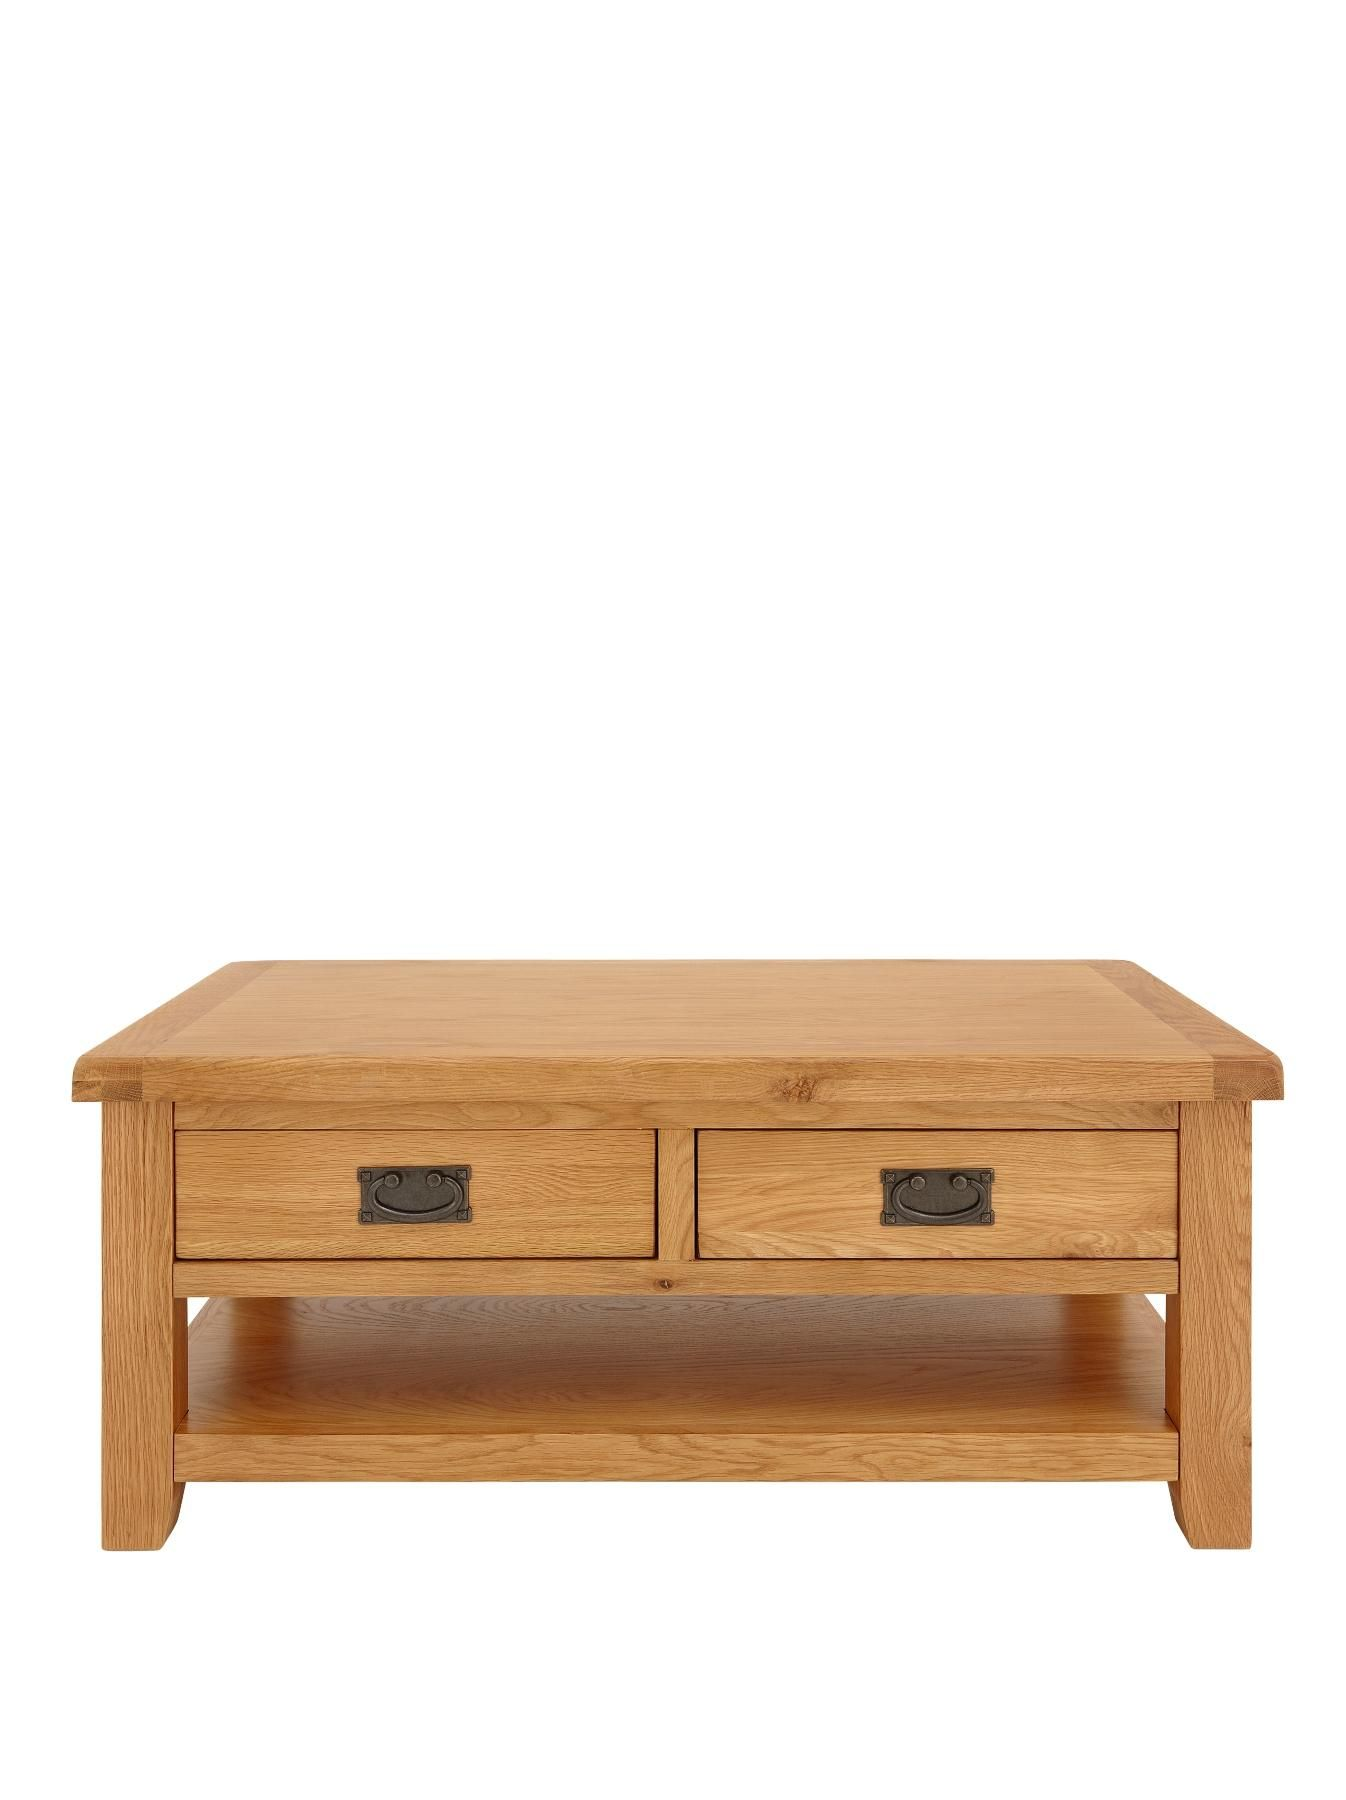 Oakland Part Assembled Solid Oak Coffee Table with 2 Storage